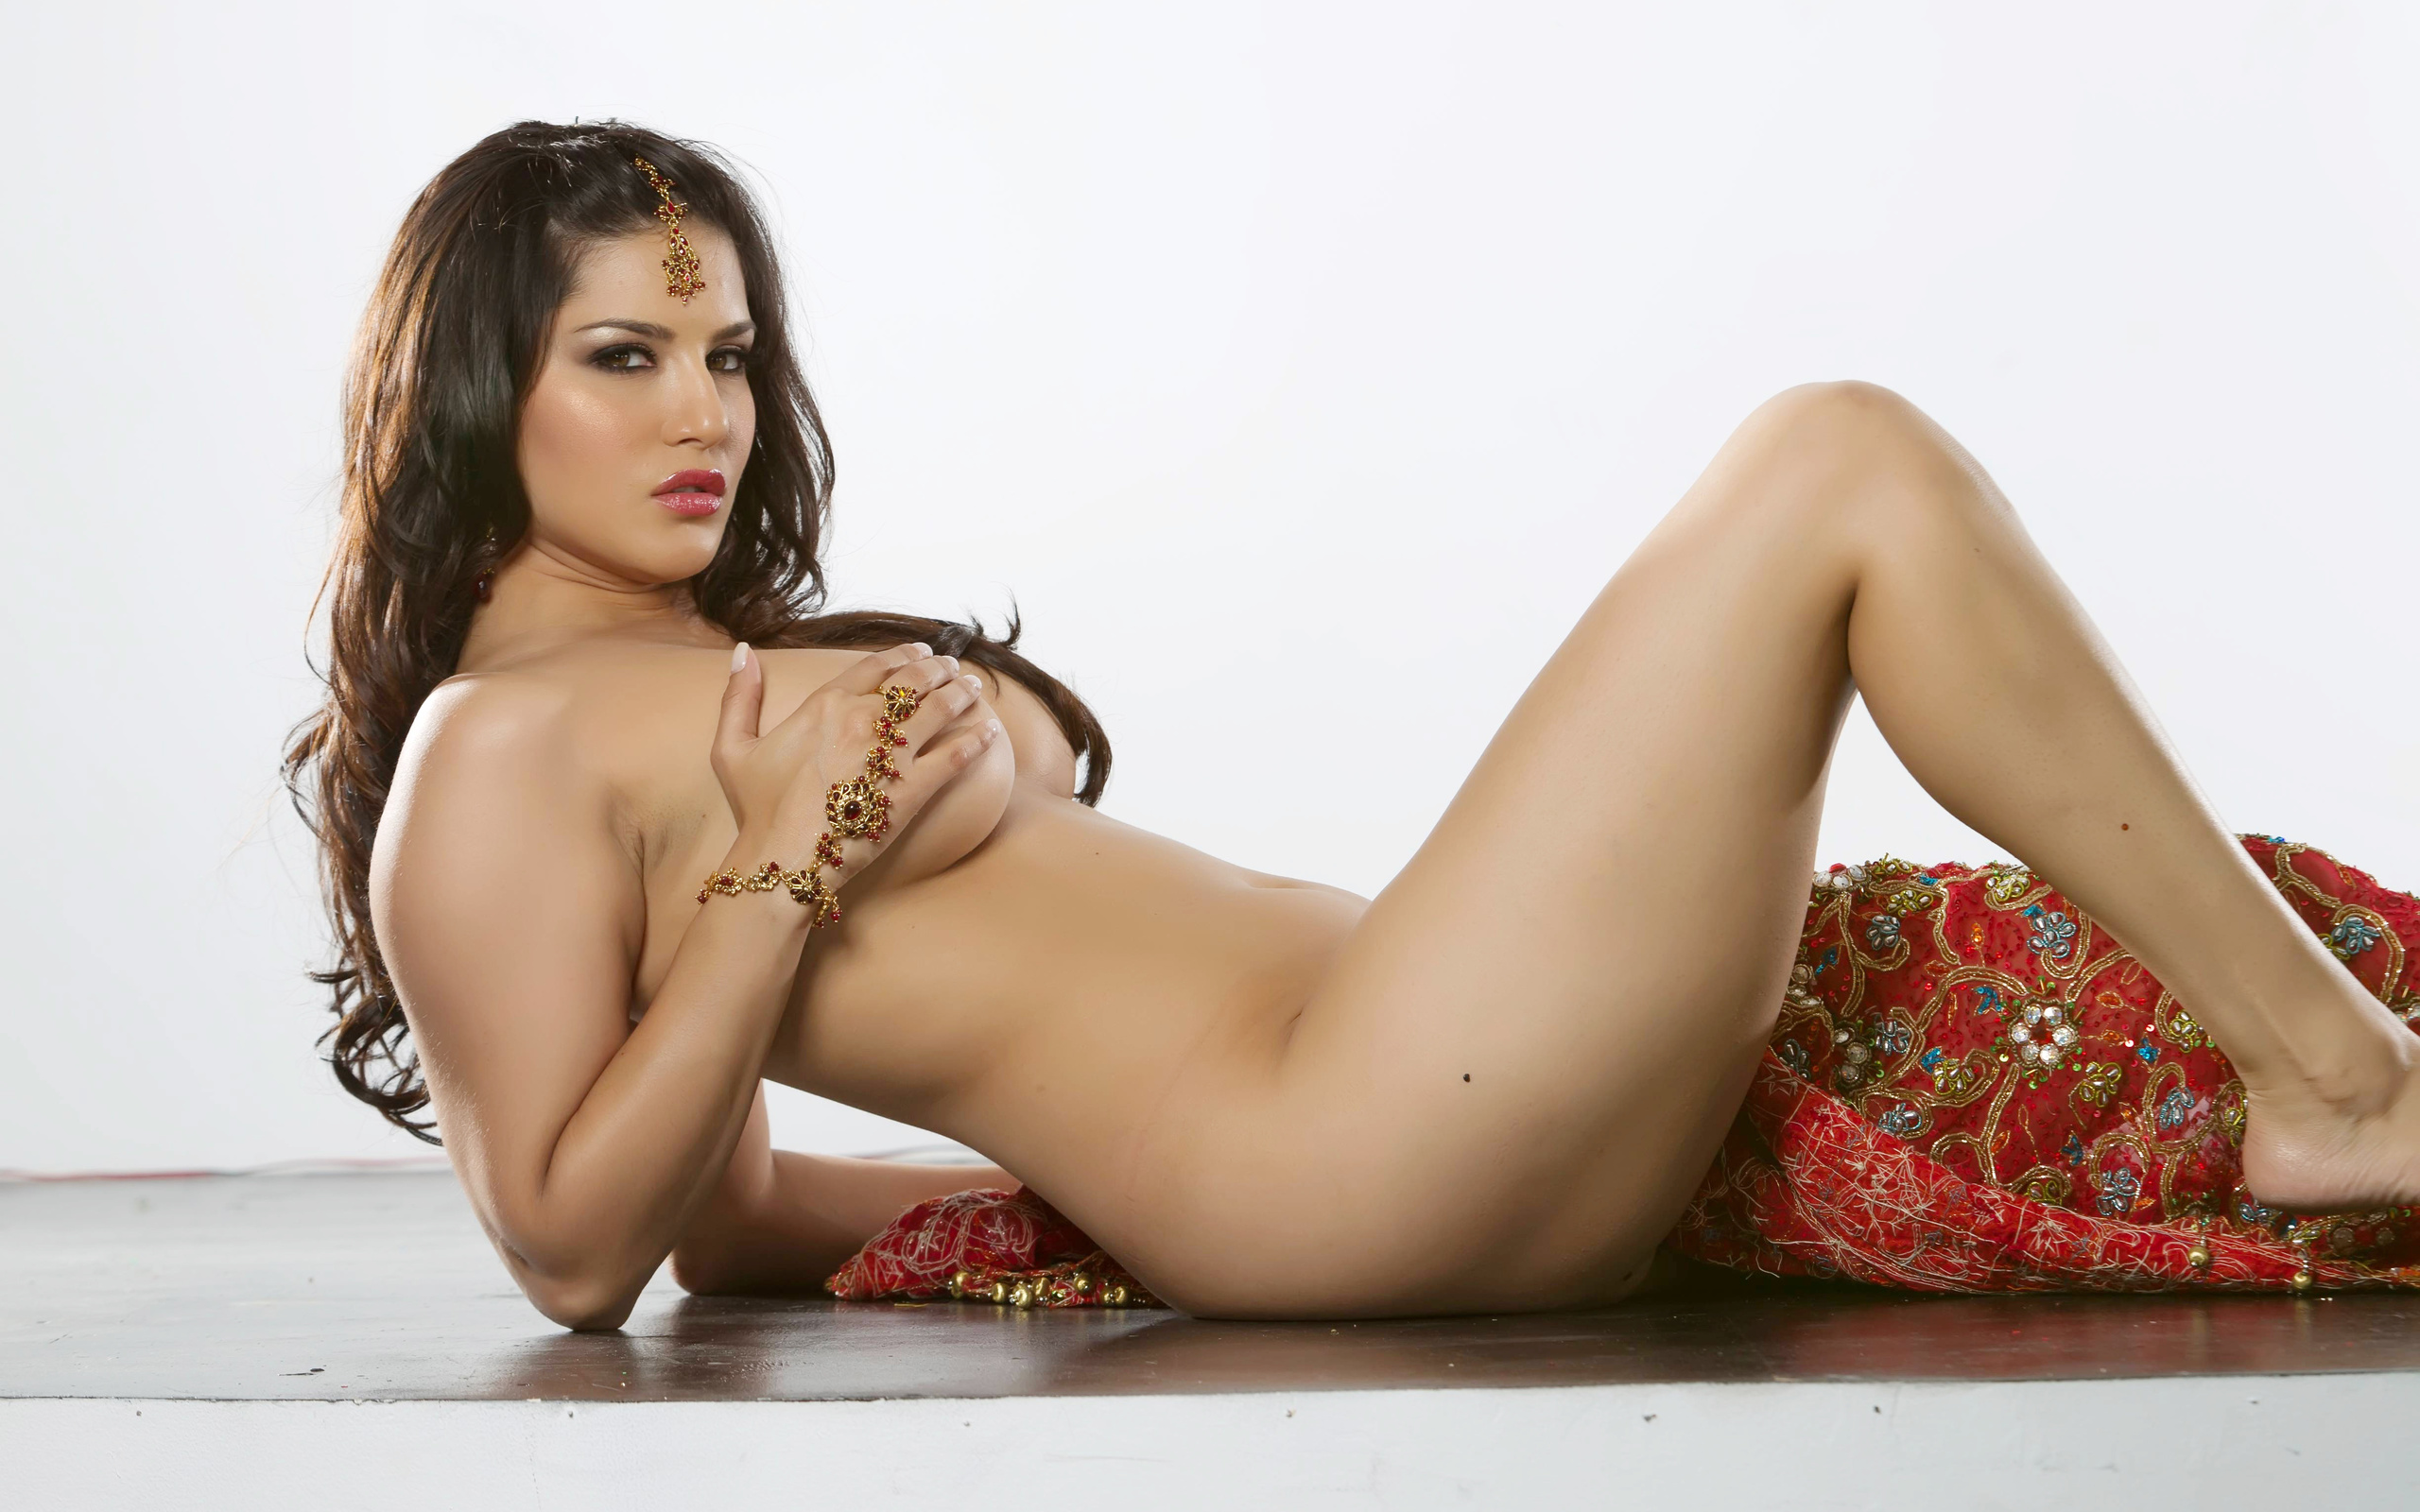 Desi hot and sexy body girl blood  sexy gallery